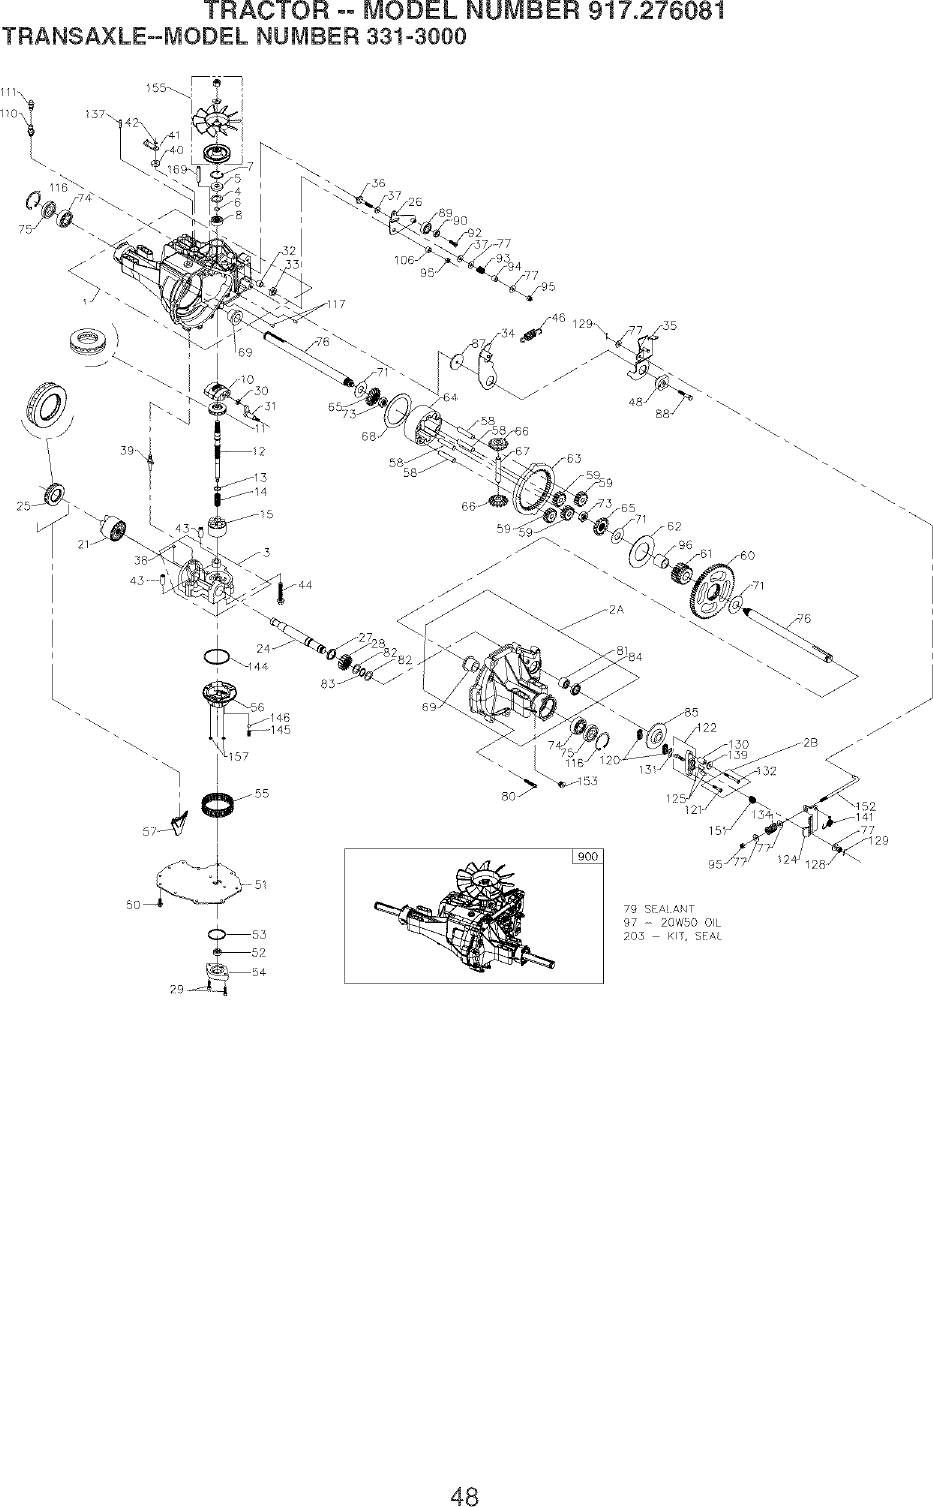 Wiring Diagram Craftsman Lawn Mower 917276081 Trusted Diagrams Sears Riding User Manual Garden Tractor Manuals And Guides Oomodel